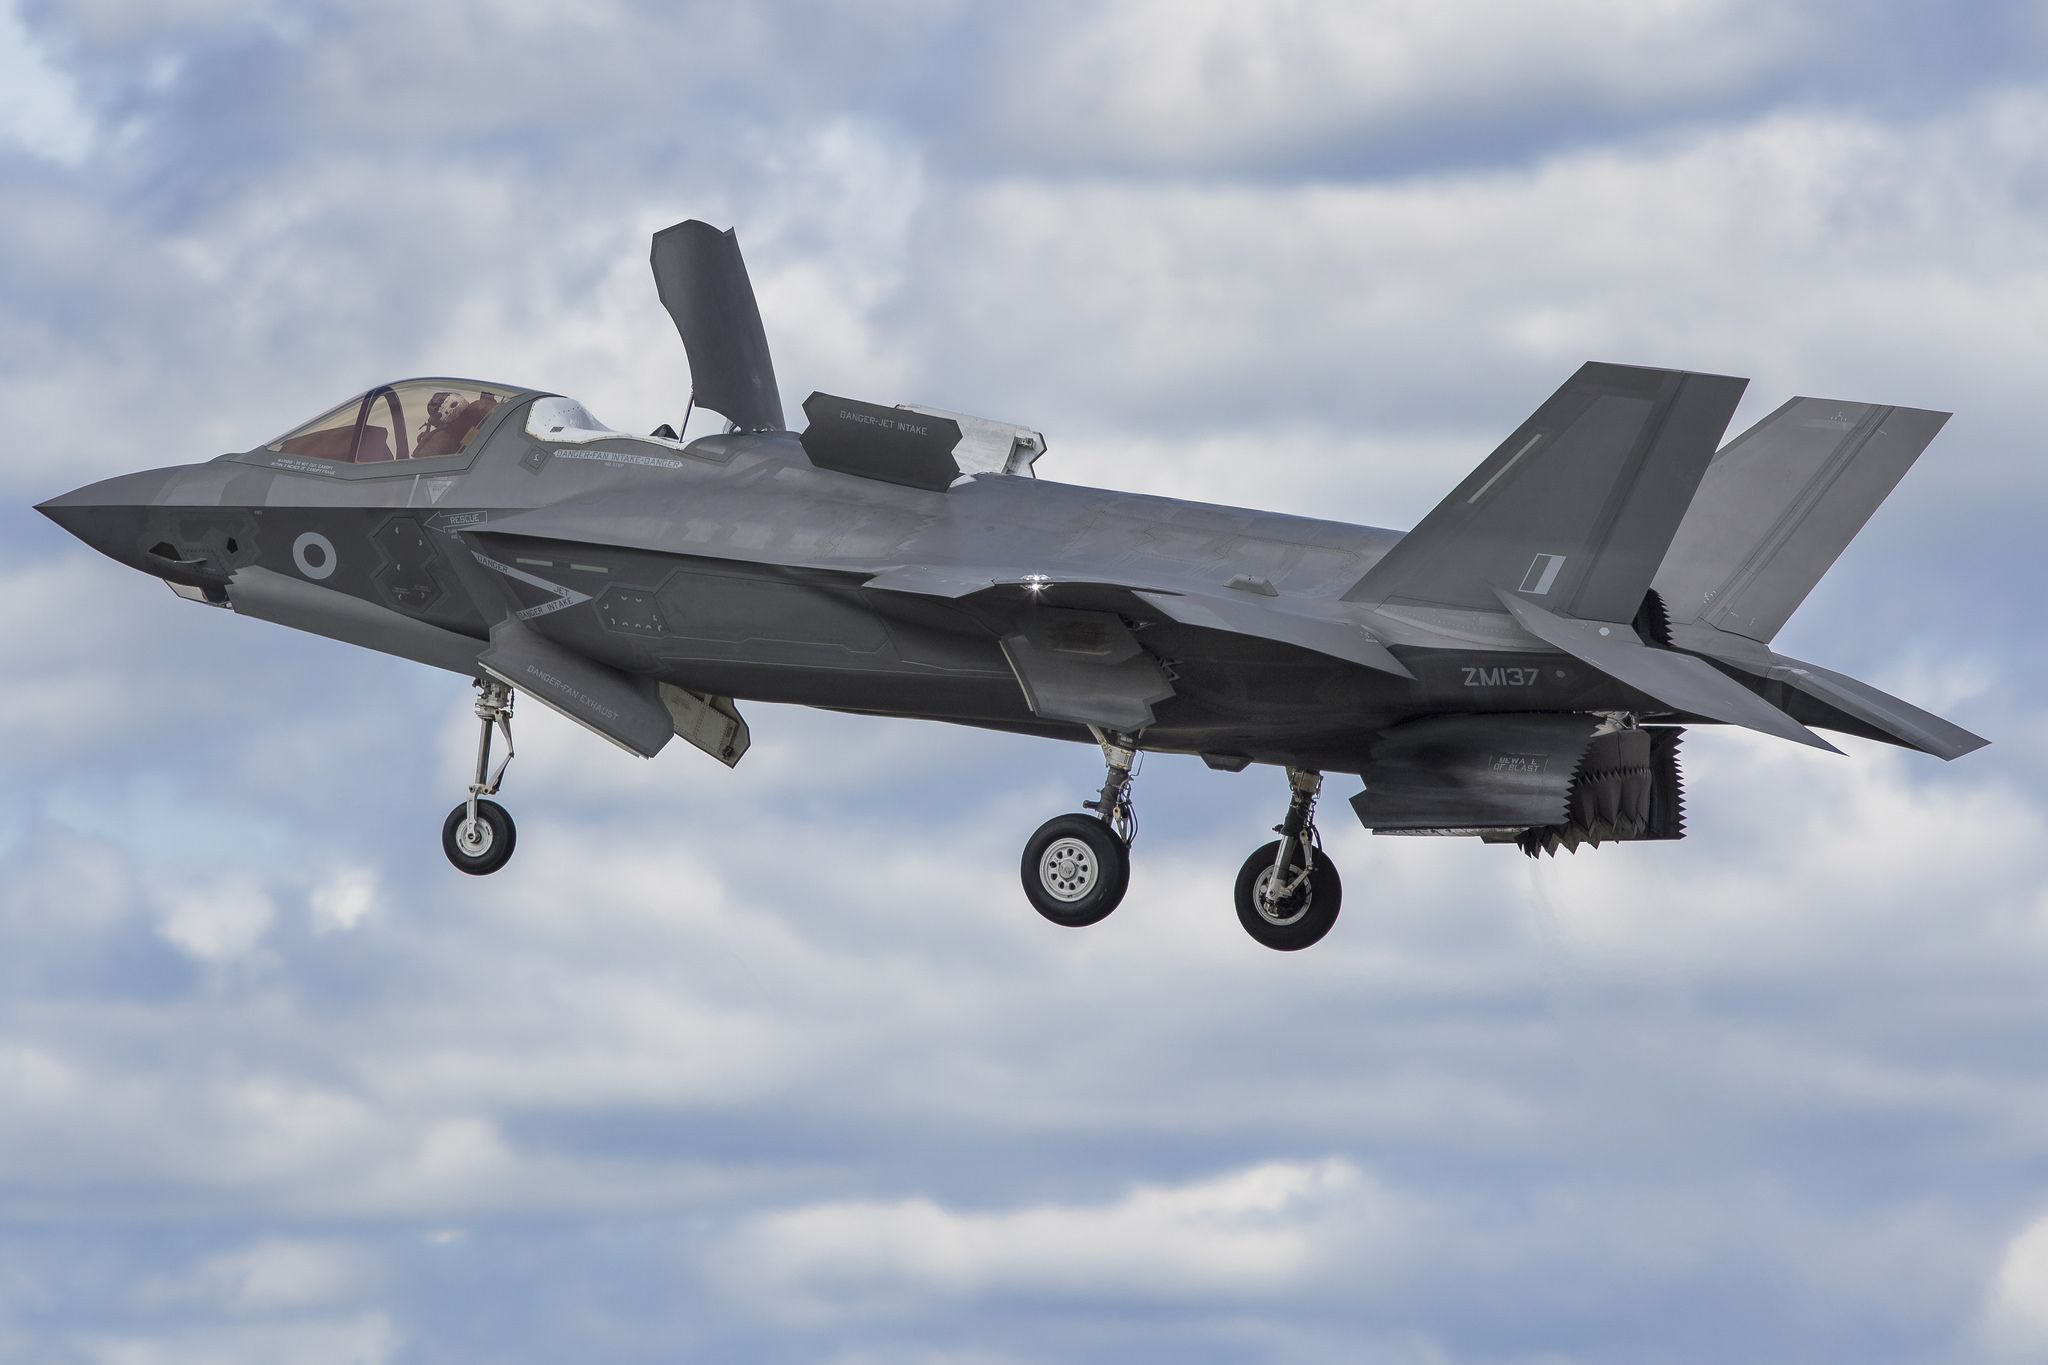 Lockheed Martin F35B Lightning II Military aircraft